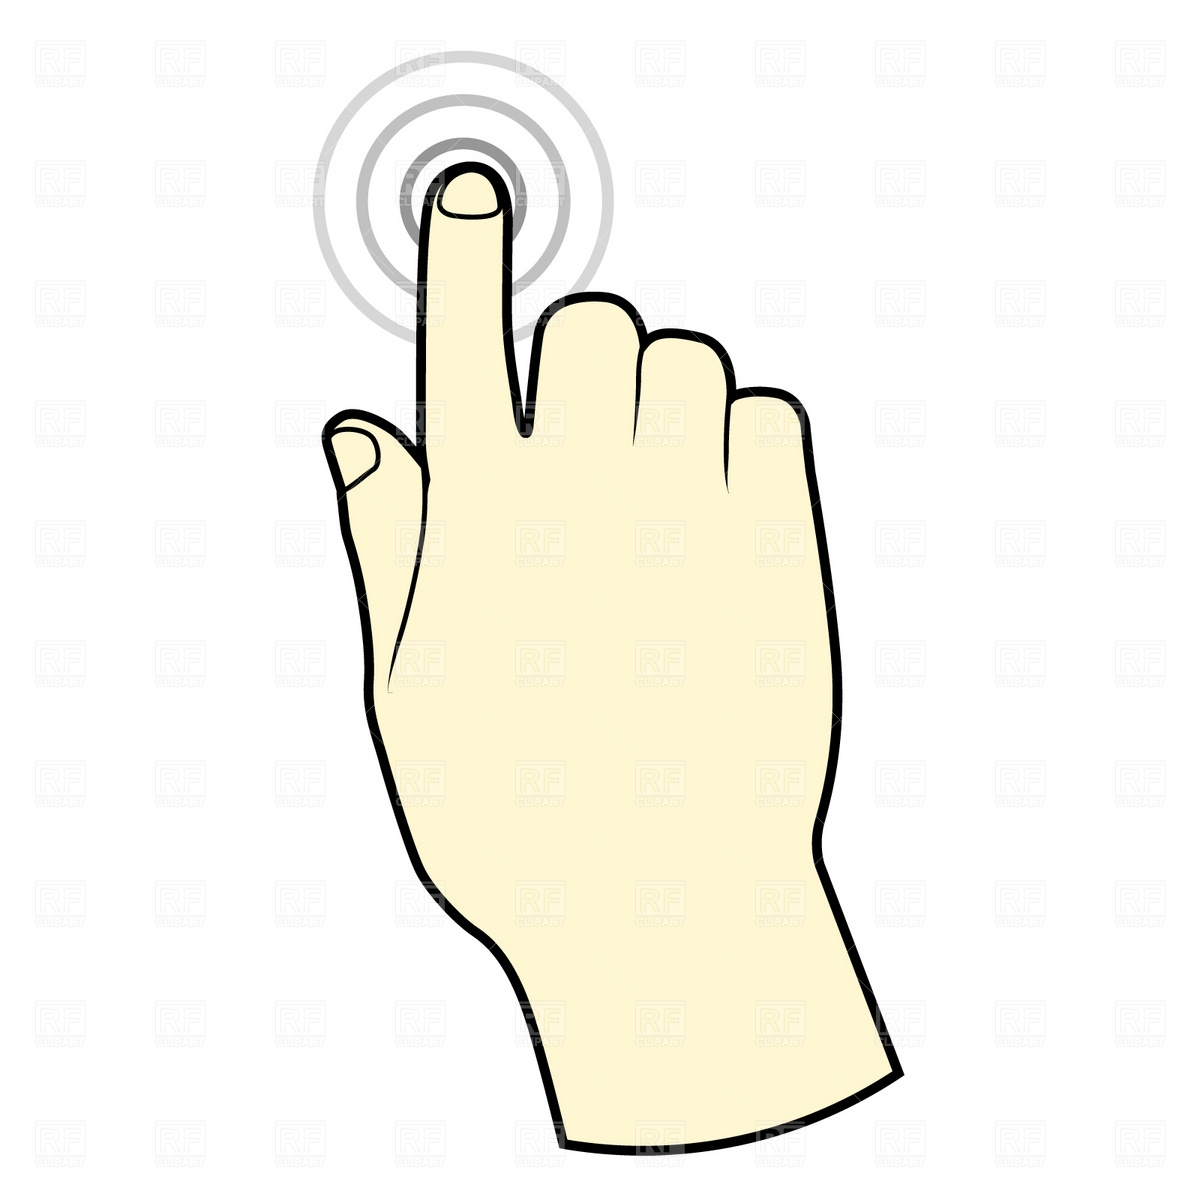 Touch clipart number 1 finger. Best of collection digital